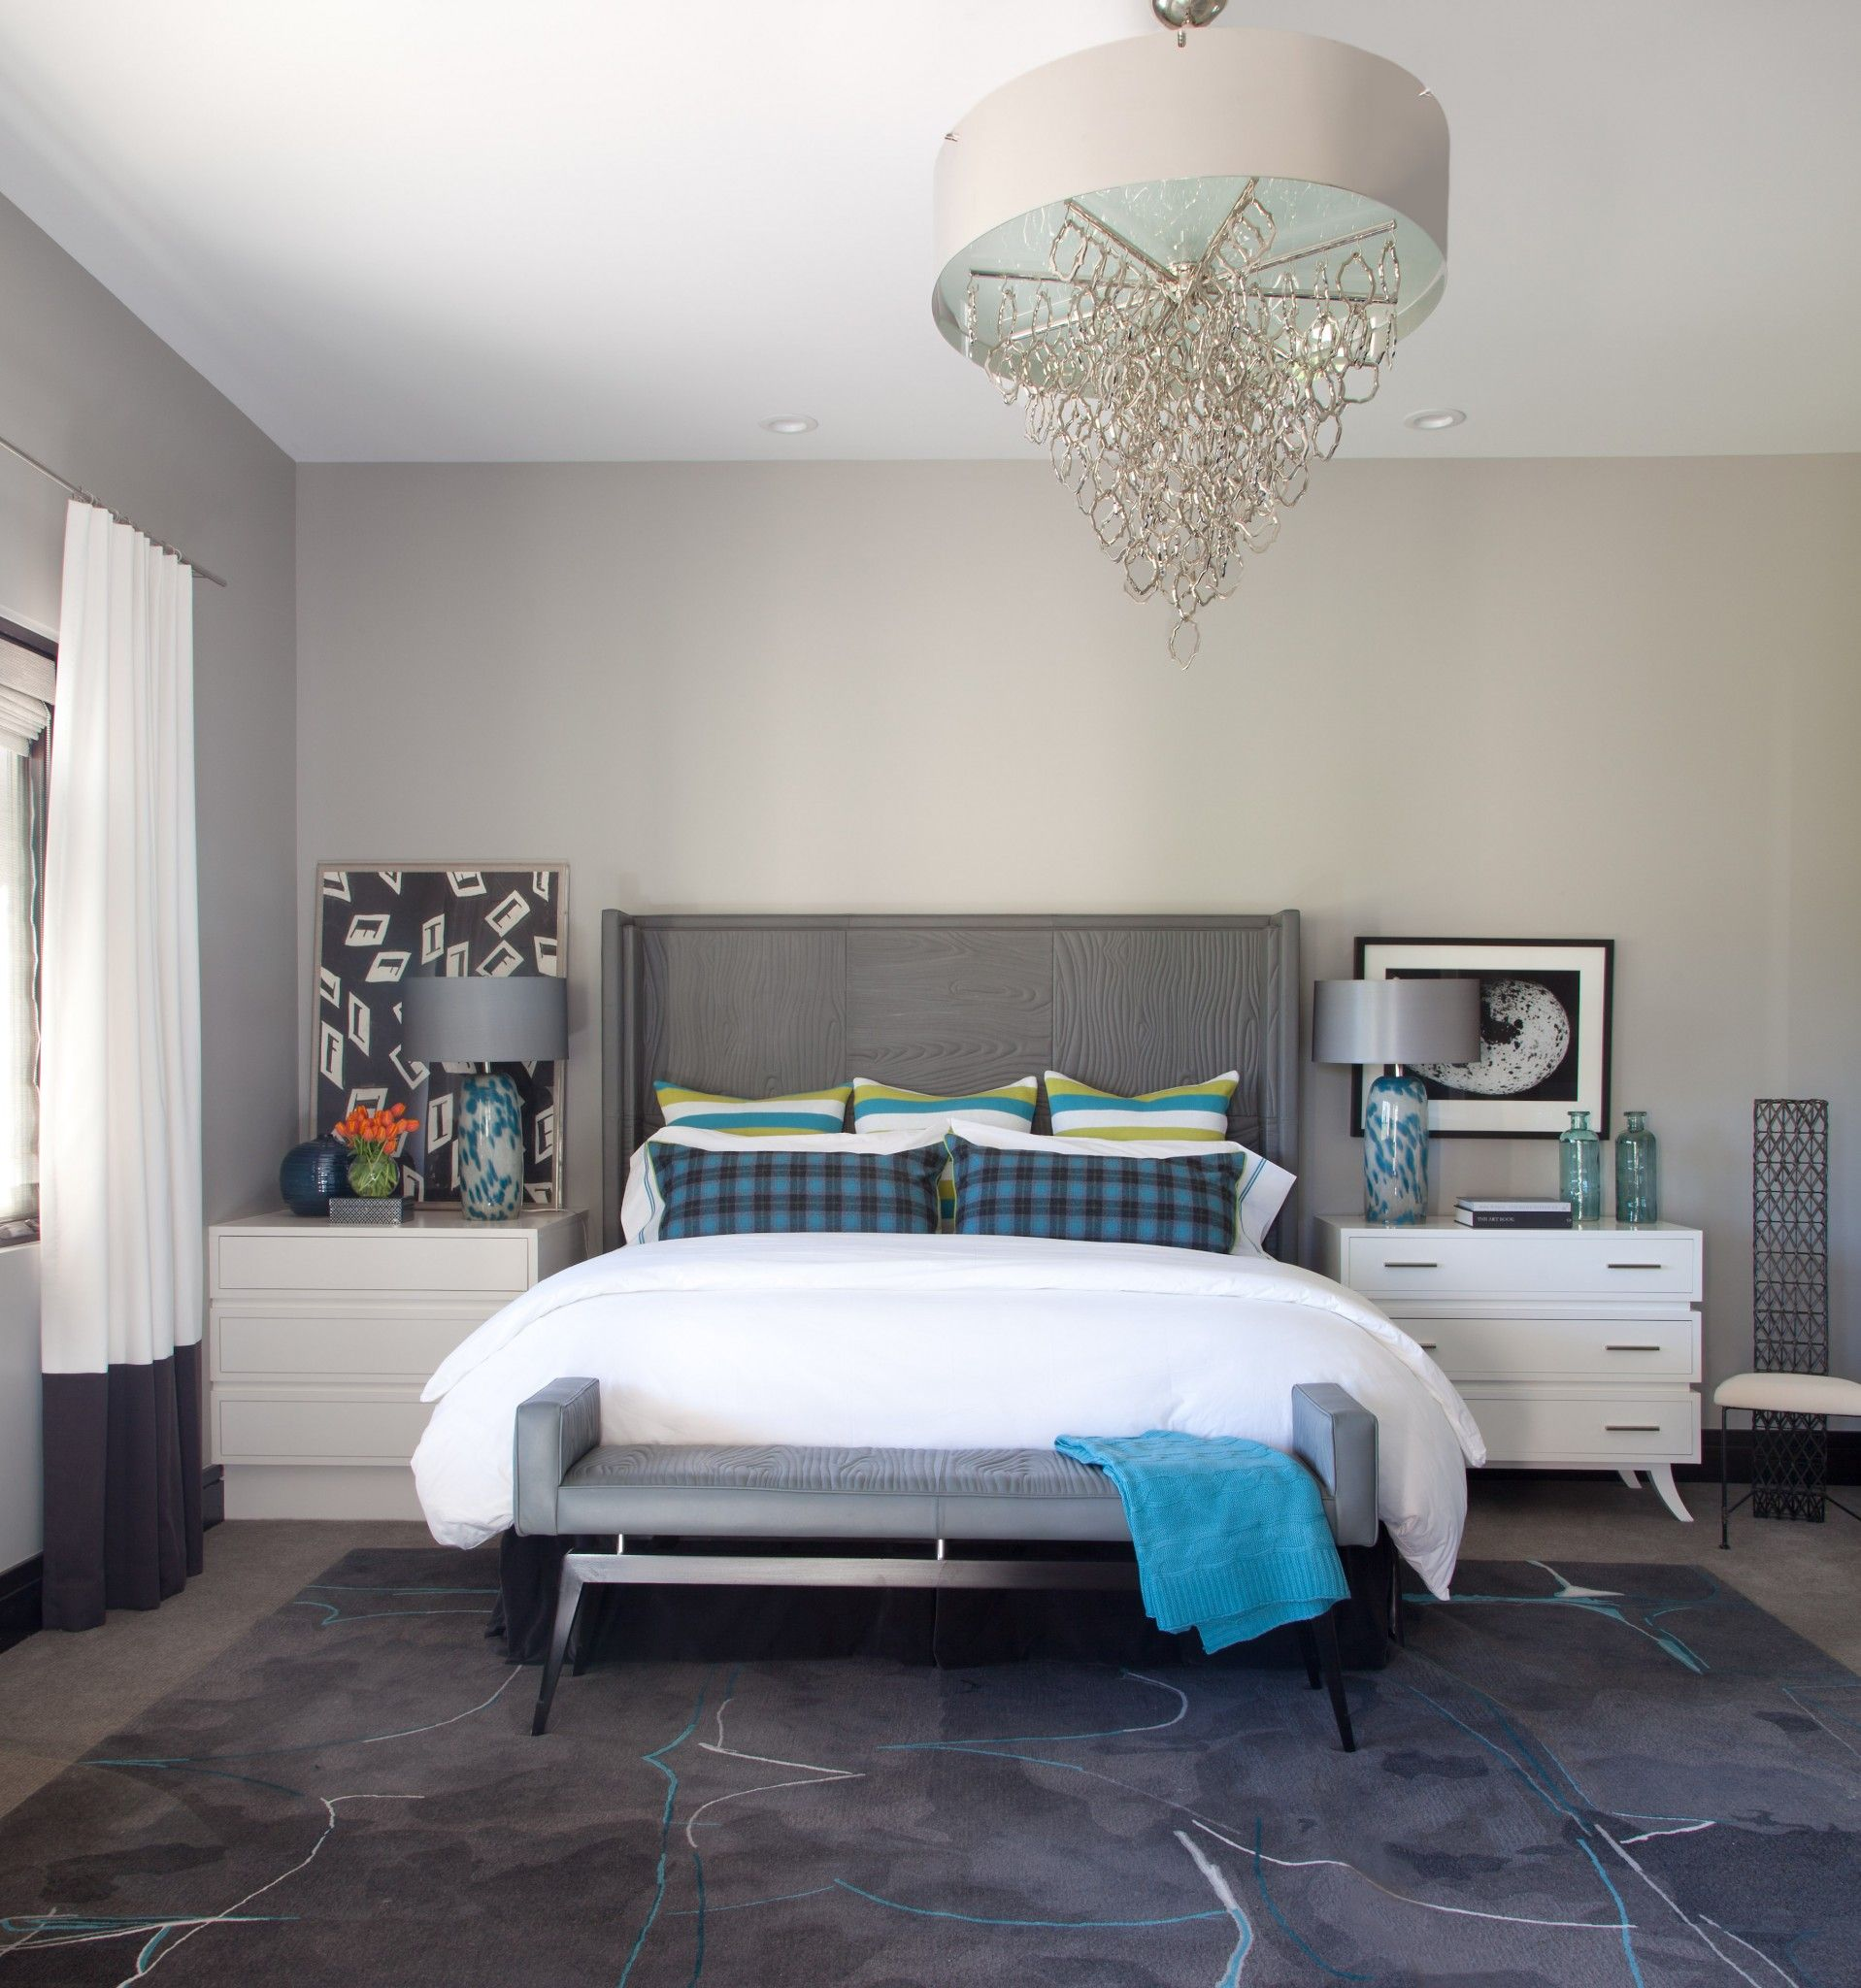 Rugs carpet carpeting interior design ideas rugs carpet carpeting interior design ideas crustal chandelier and complex texture of the baanklon Image collections